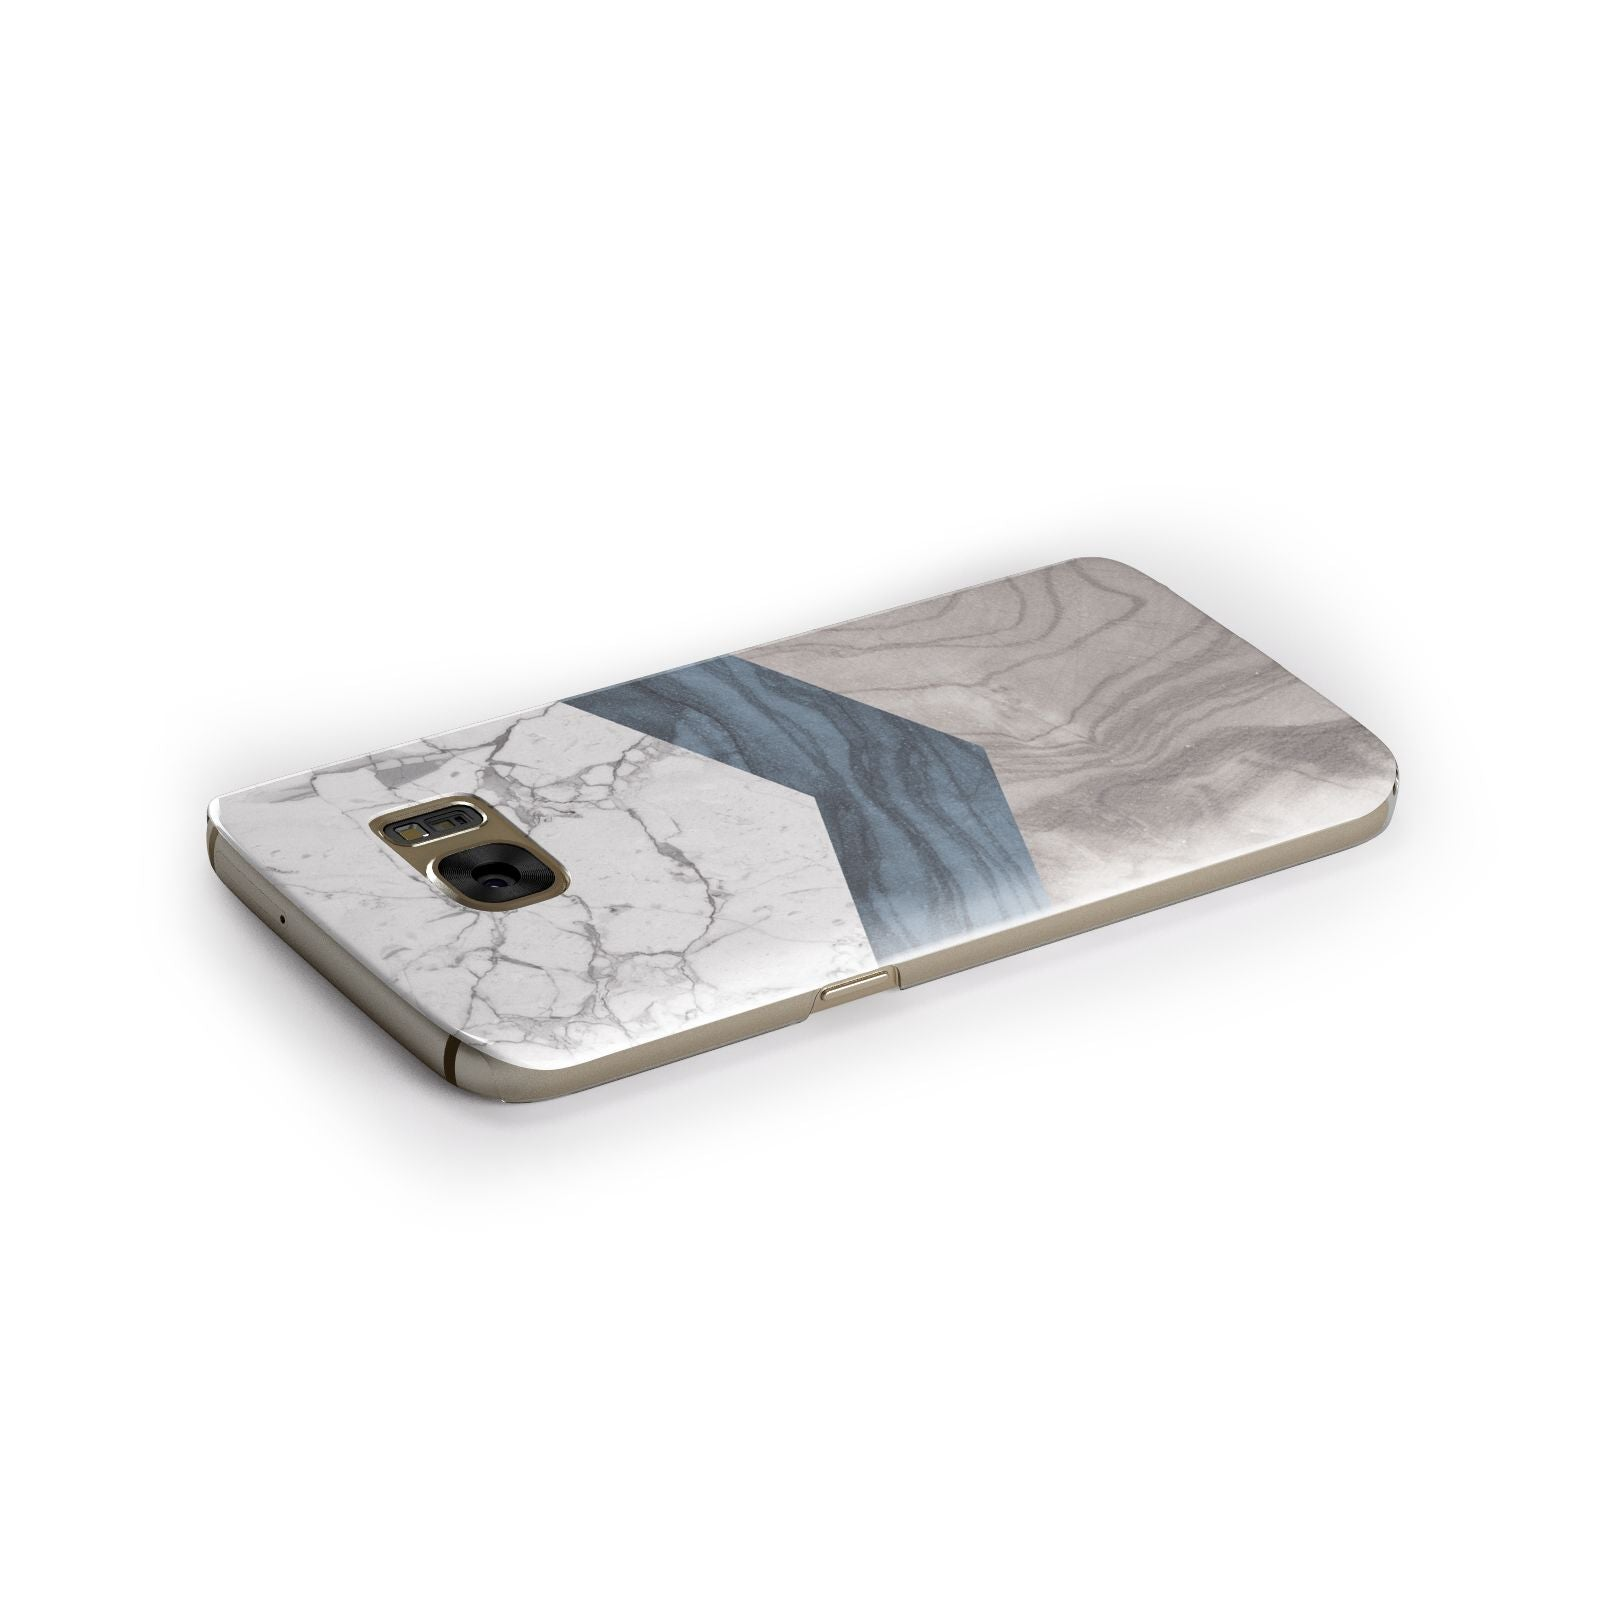 Marble Wood Geometric 8 Samsung Galaxy Case Side Close Up